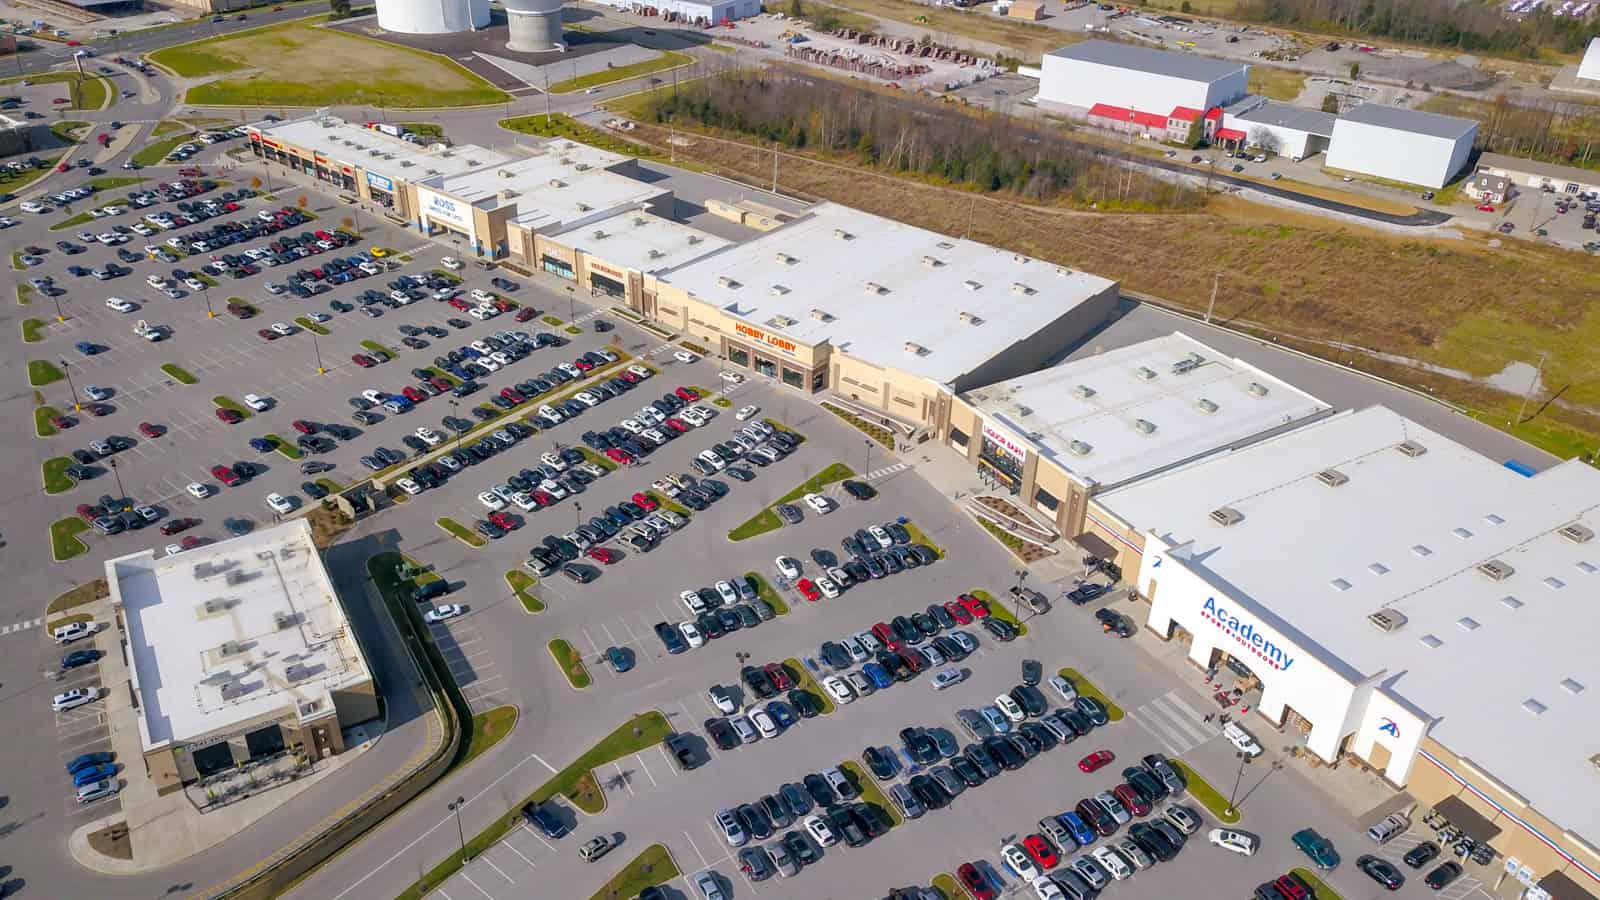 aerial drone photo of commercial real estate shopping plaza filled with cars in the parking lot